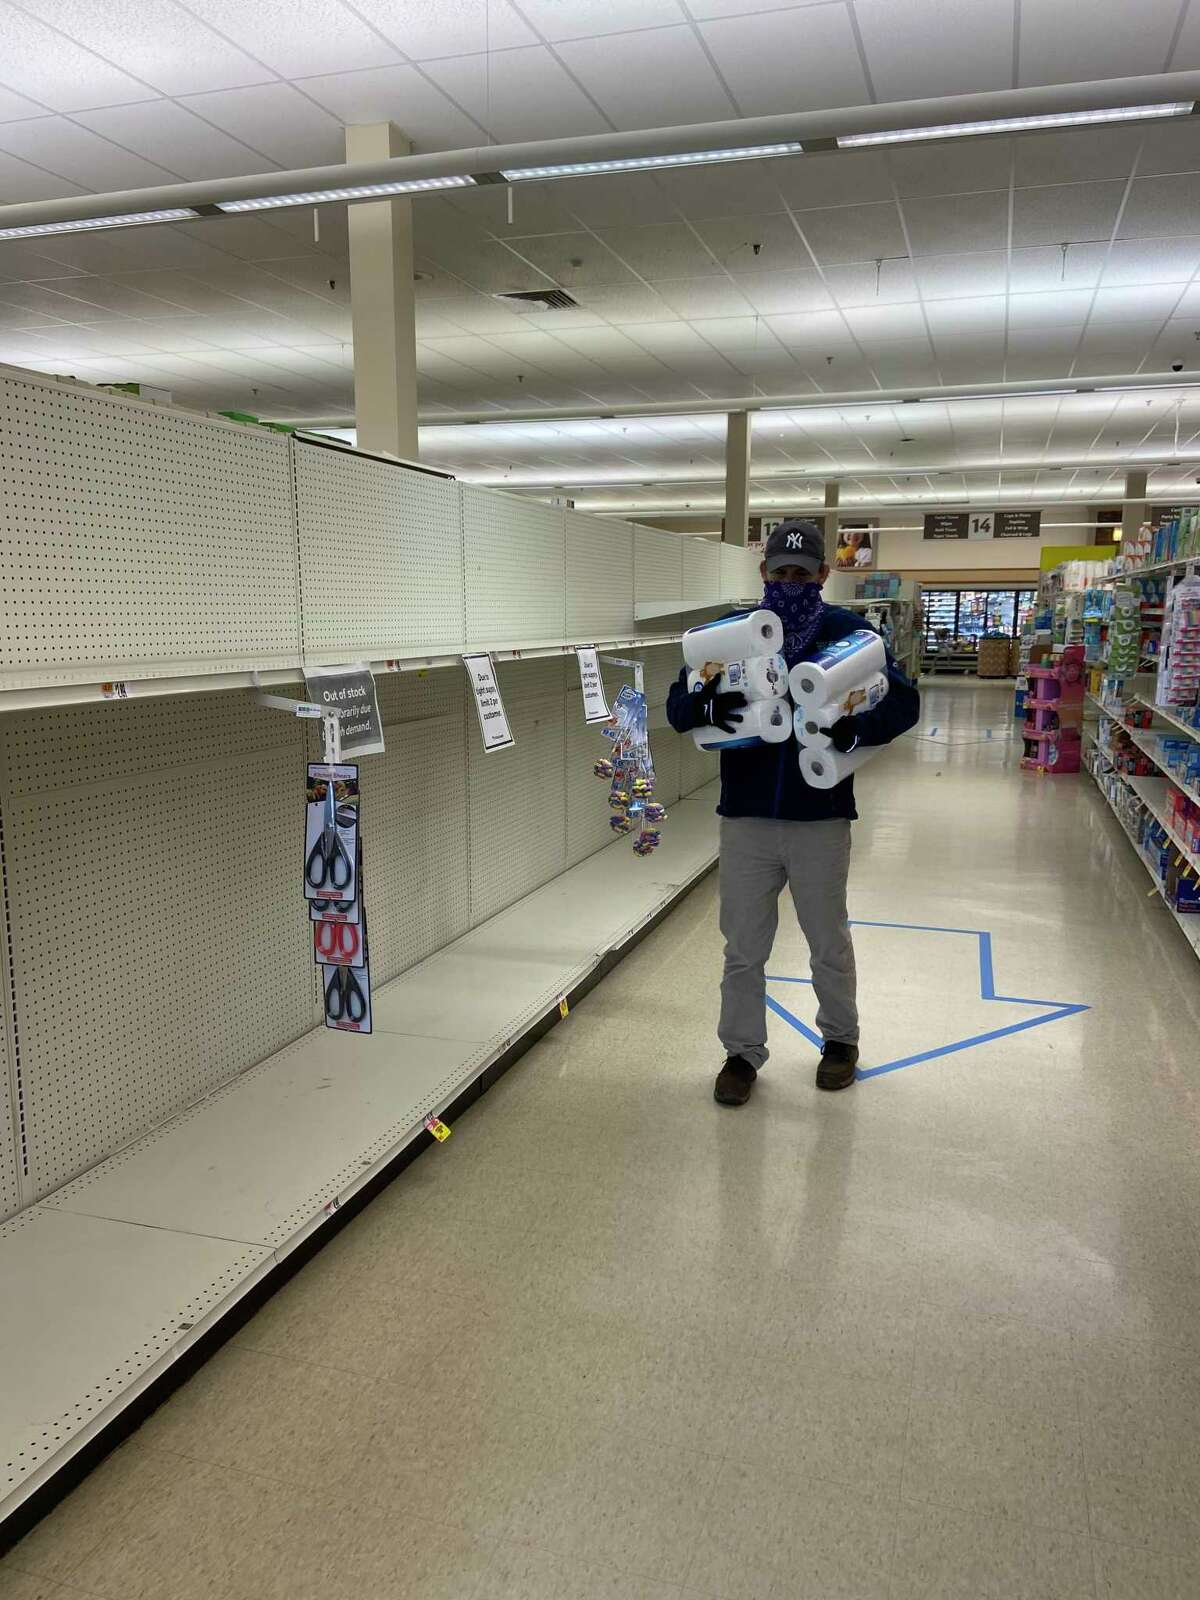 A masked customer is stocking up on needed paper supplies amid the nearly empty supermarket shelves.